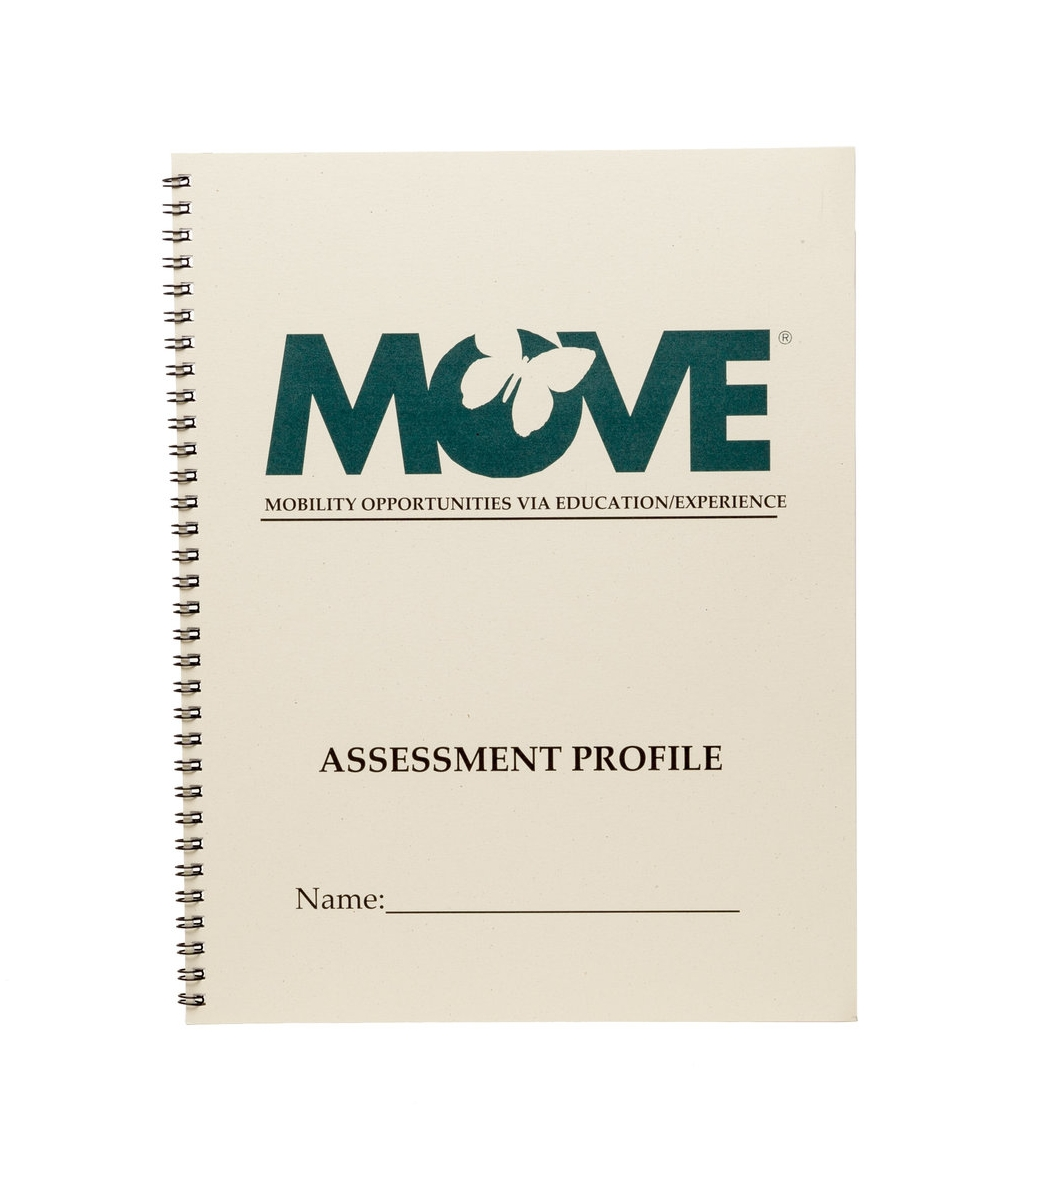 "MOVE Assessment Profile    $16.00   The MOVE™ Assessment Profile is a data collection booklet used to monitor progress in the MOVE Program. Decisions regarding each step of the MOVE Program are recorded in the individual's profile, making record keeping permanent and easy. The Profile includes the ""Top-Down Motor Milestone Test"", Summary of Test Results page and several pages to document Prompt Plans. This is meant to be used in conjunction with the MOVE Reference Manual."